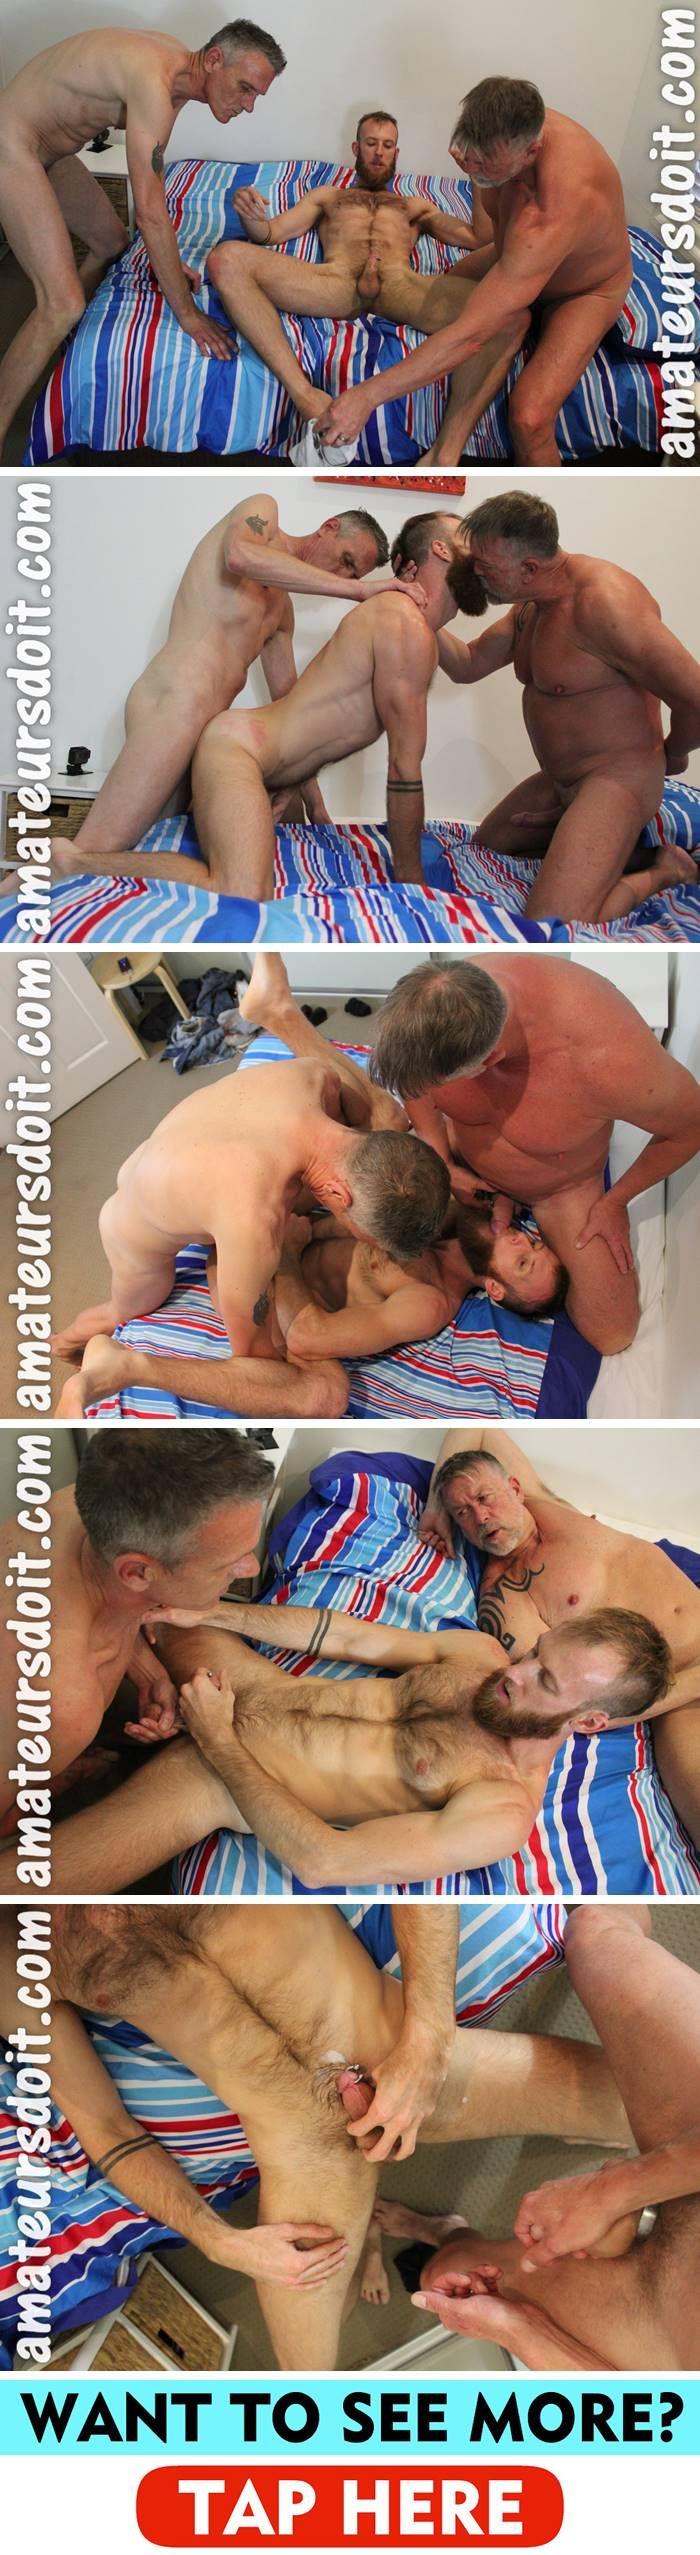 AmateursDoIt: Tyla, Max & Don - Bareback Threesome